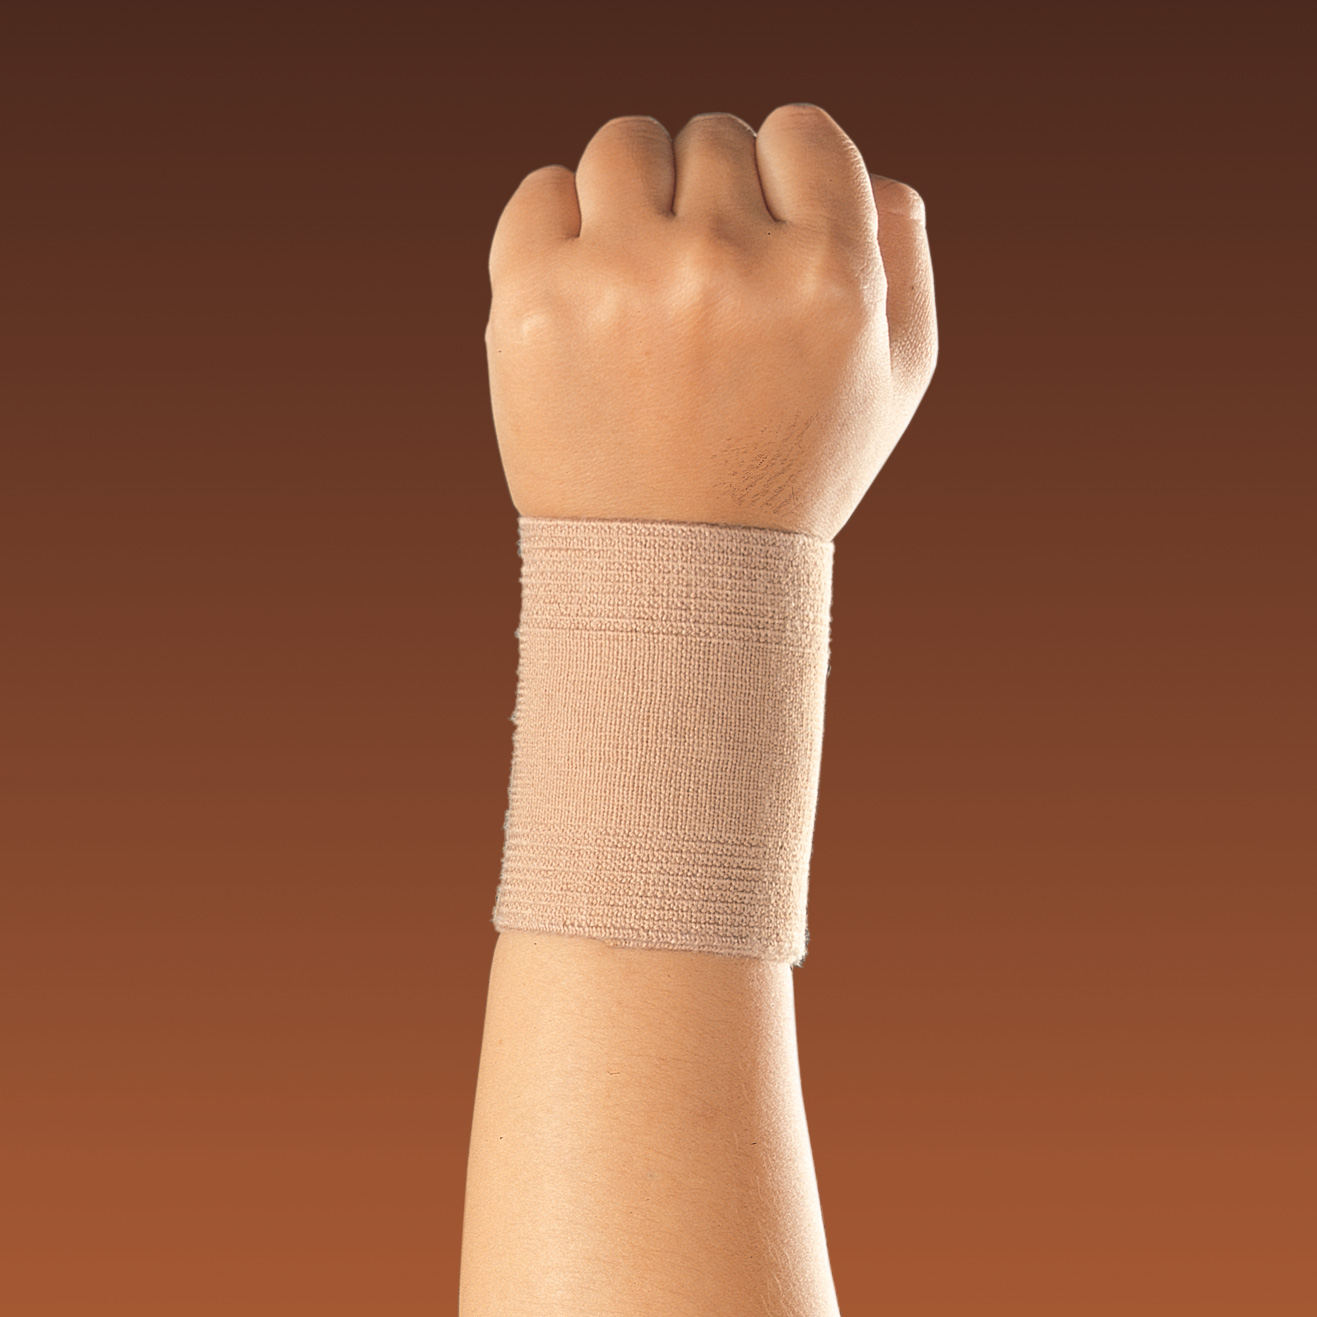 WRIST SUPPORT (HWRE51)